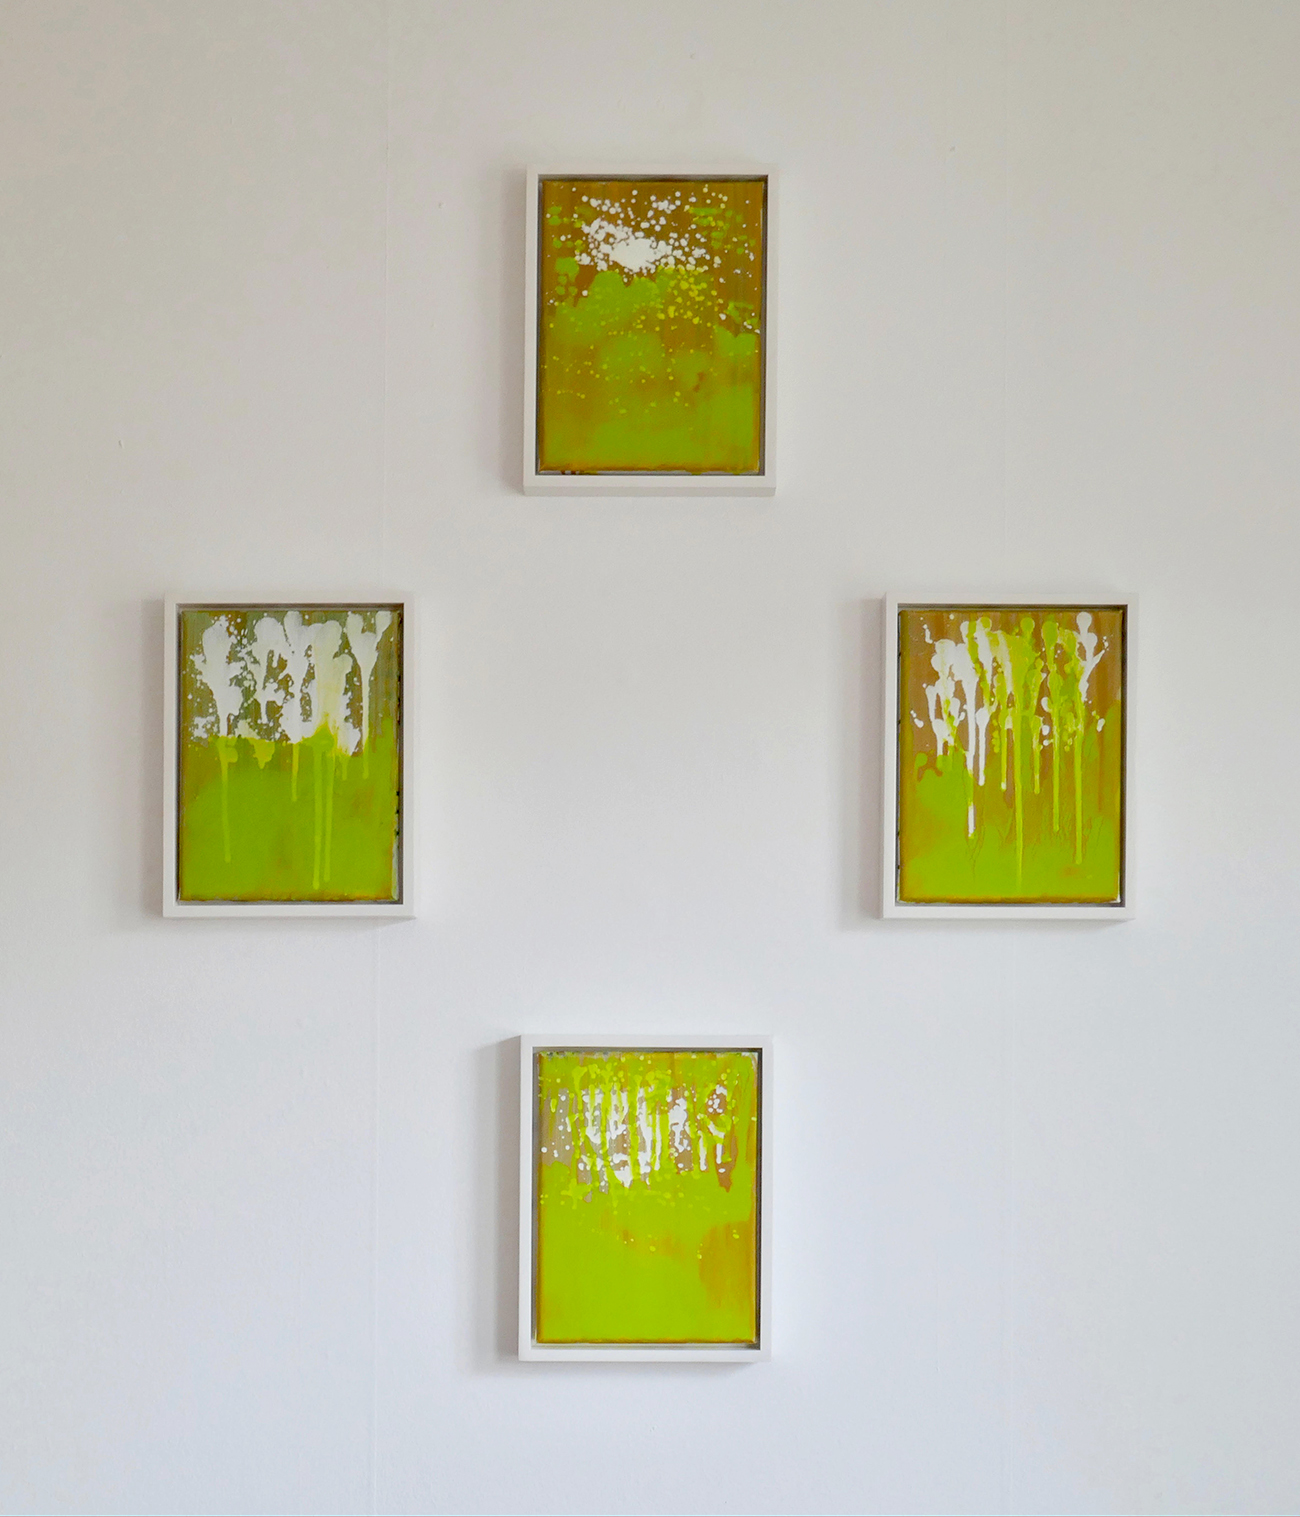 Rody Luton, Verdant 1-4, oil on canvas (approximately 96 x 78 cm ), 2018.